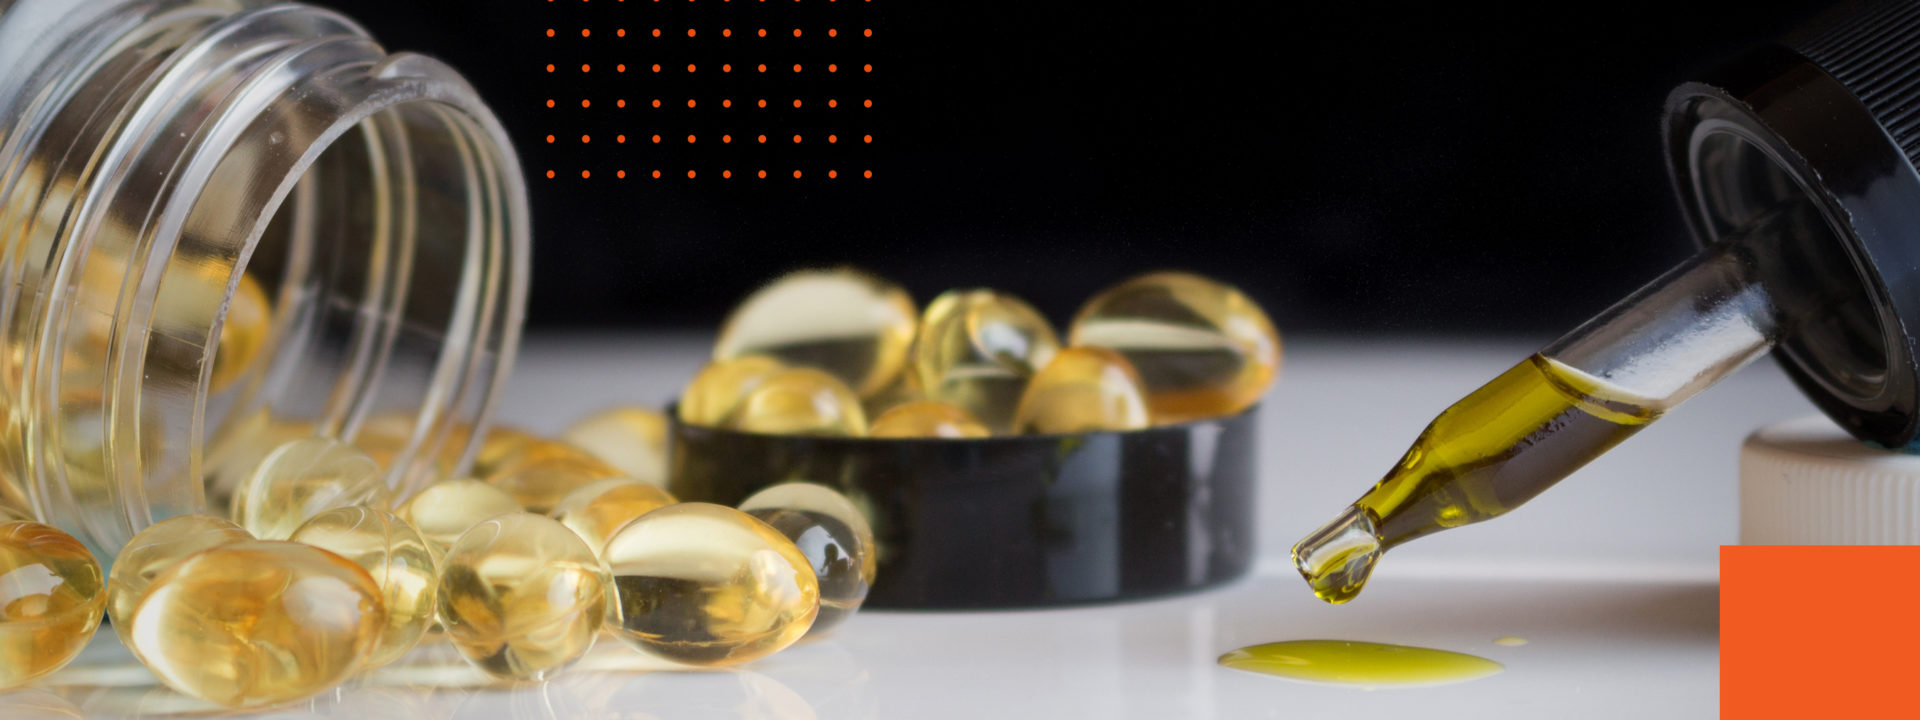 The Pros and Cons of Cannabis Capsules or Tinctures